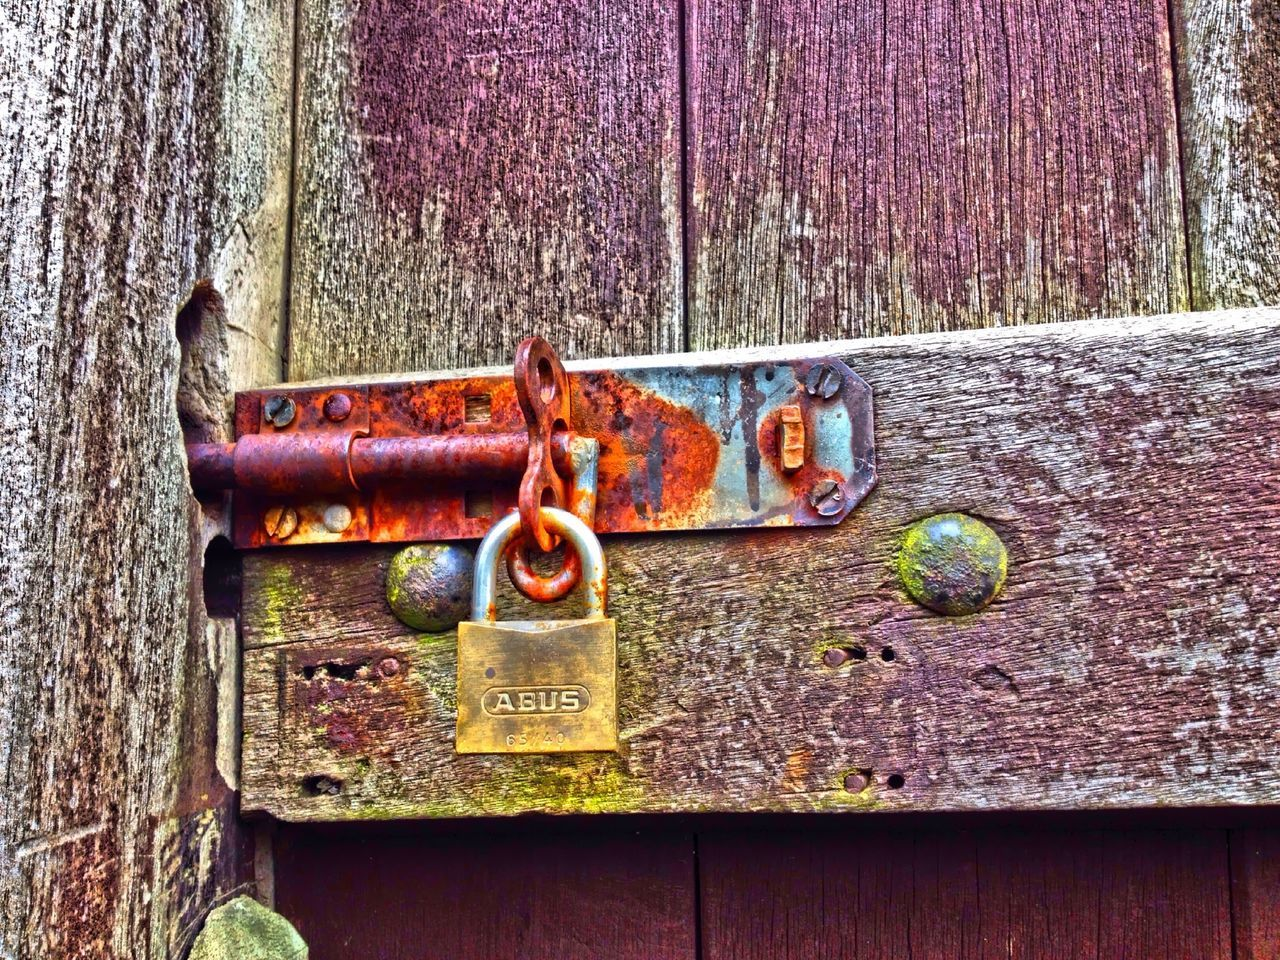 Lock on a wooden gate Lock Gate Wood Wooden Door Fasten Fastening Locked Security Secure